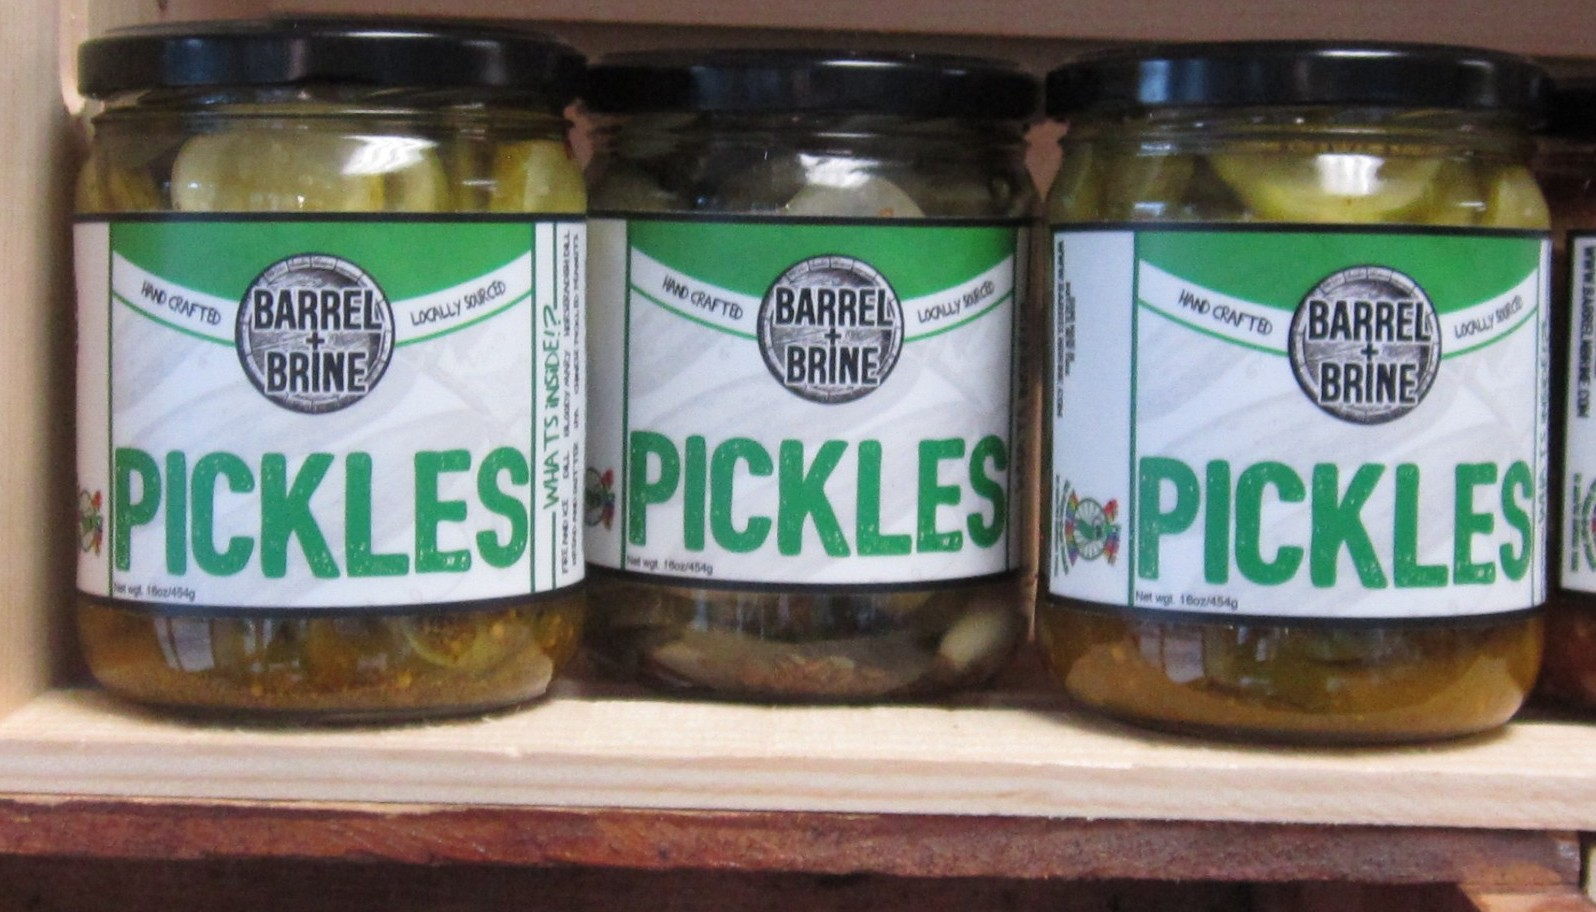 Barrel and Brine Bread and Butter Pickles 16oz